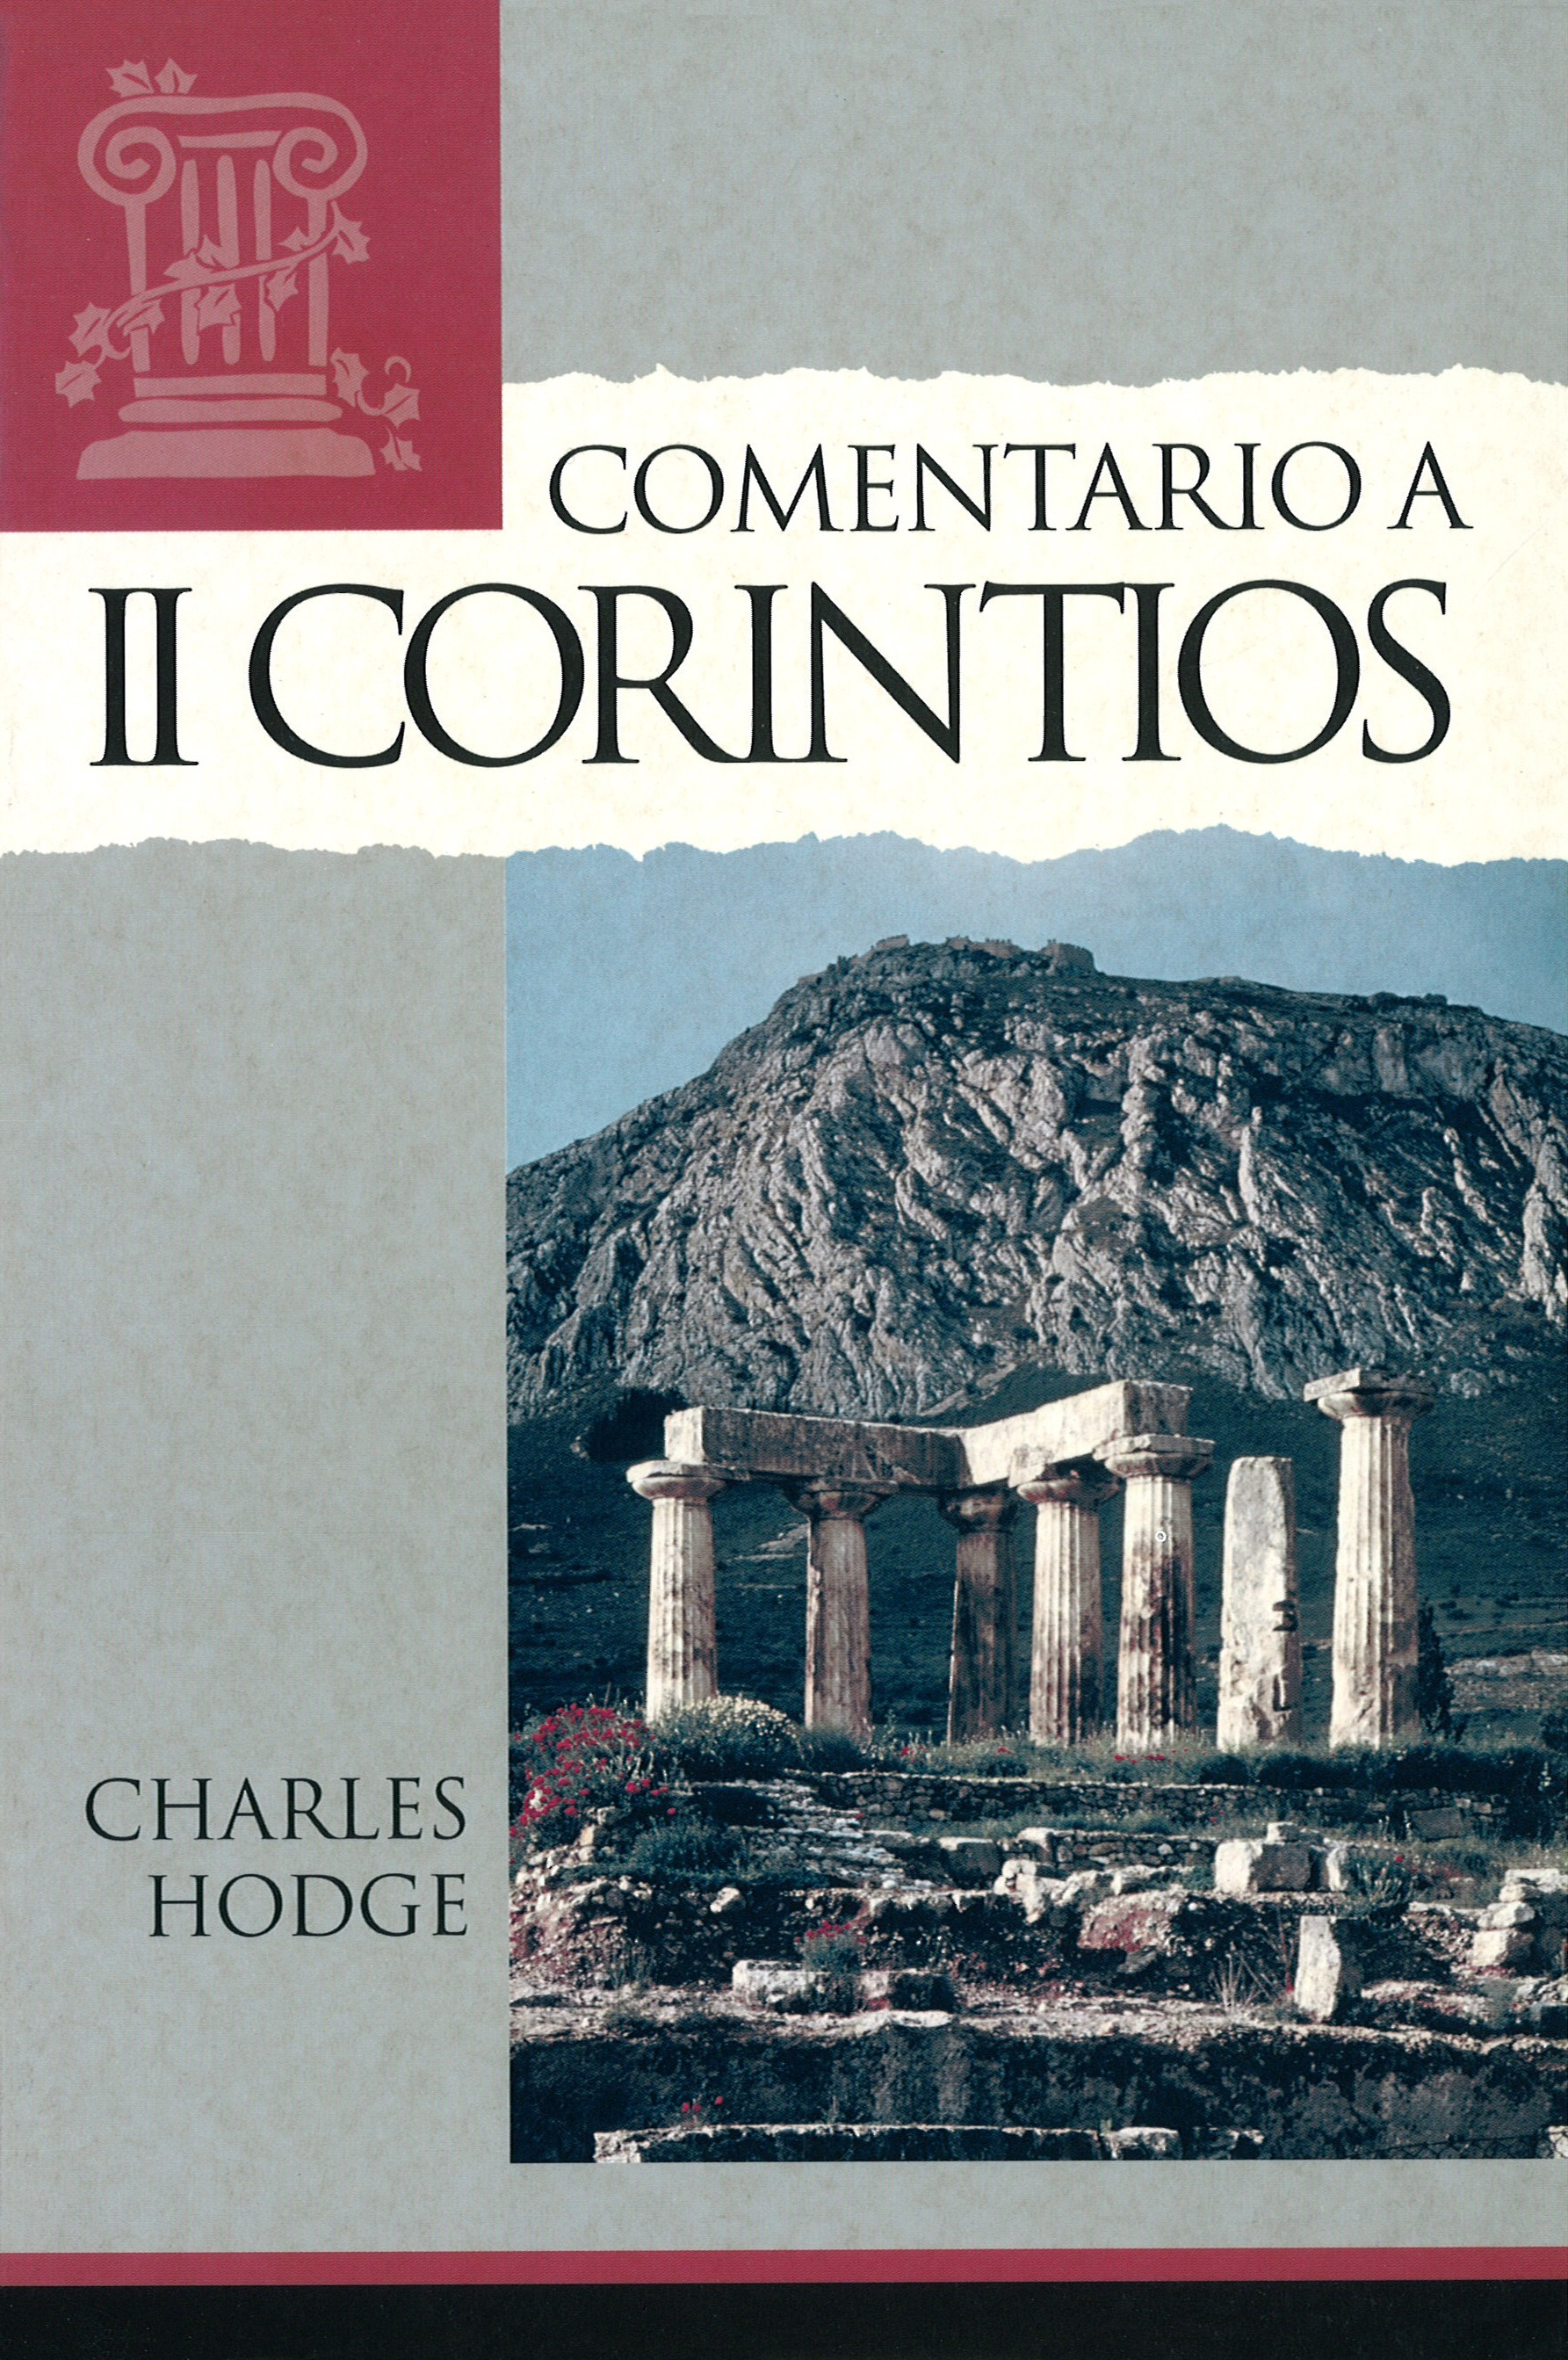 Book Cover For 'II Corintias'